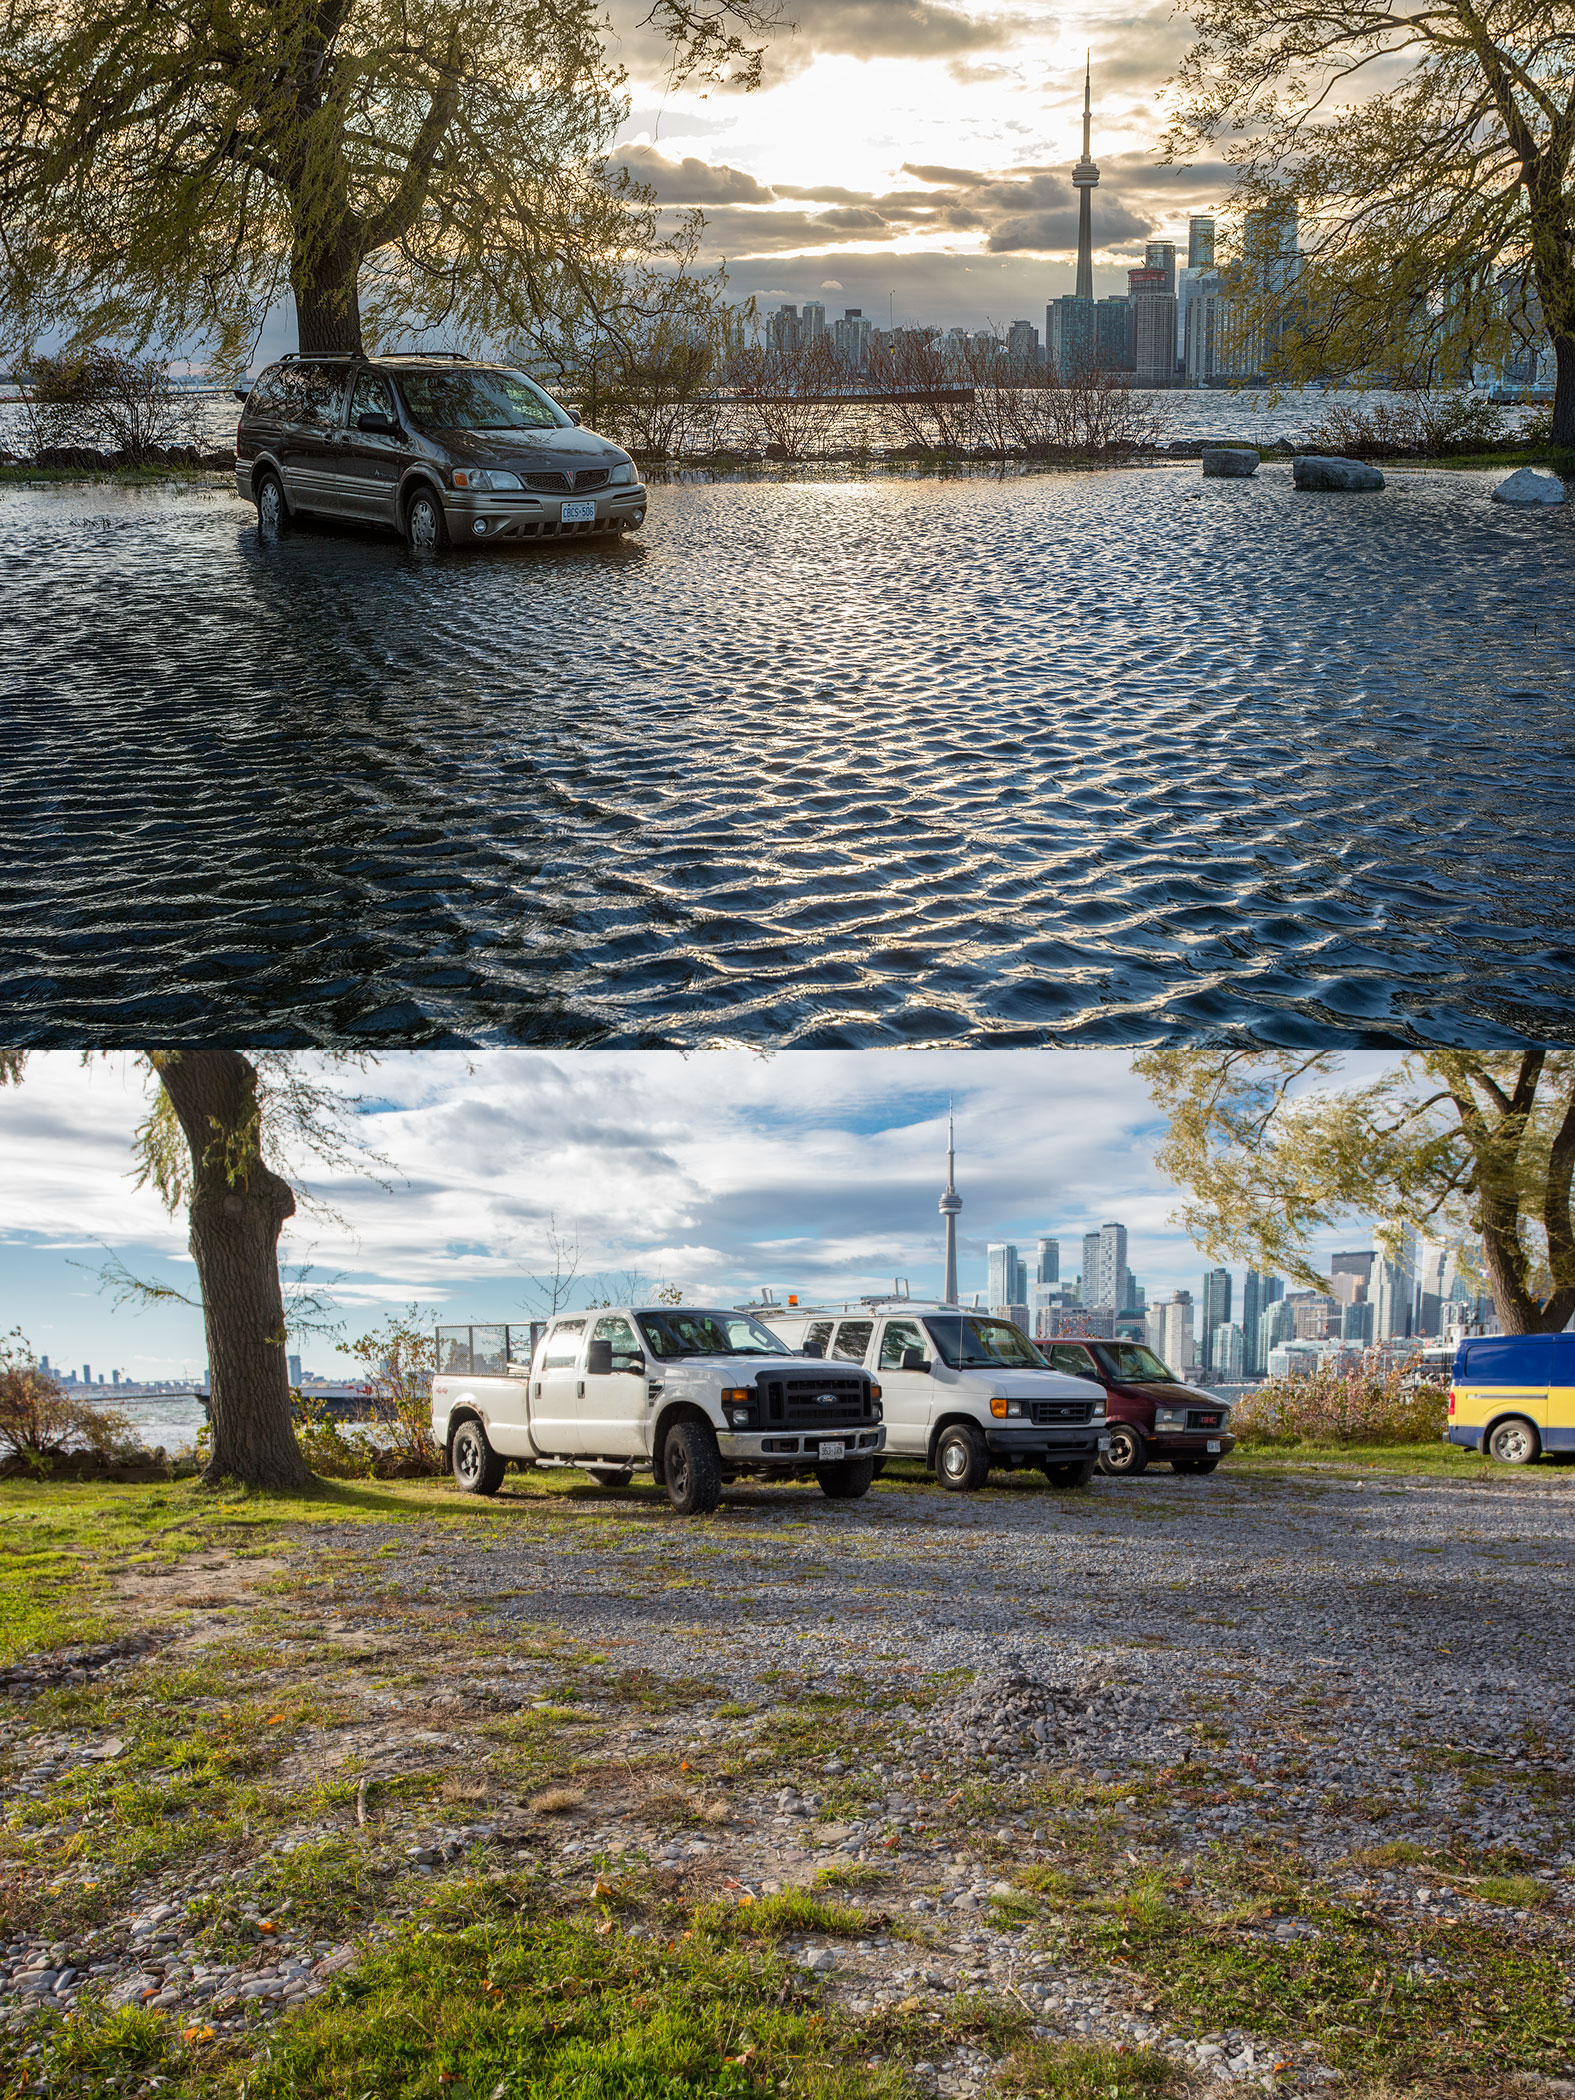 Parking lot before and after Flood of 2017, Ward's Island, Toronto Islands